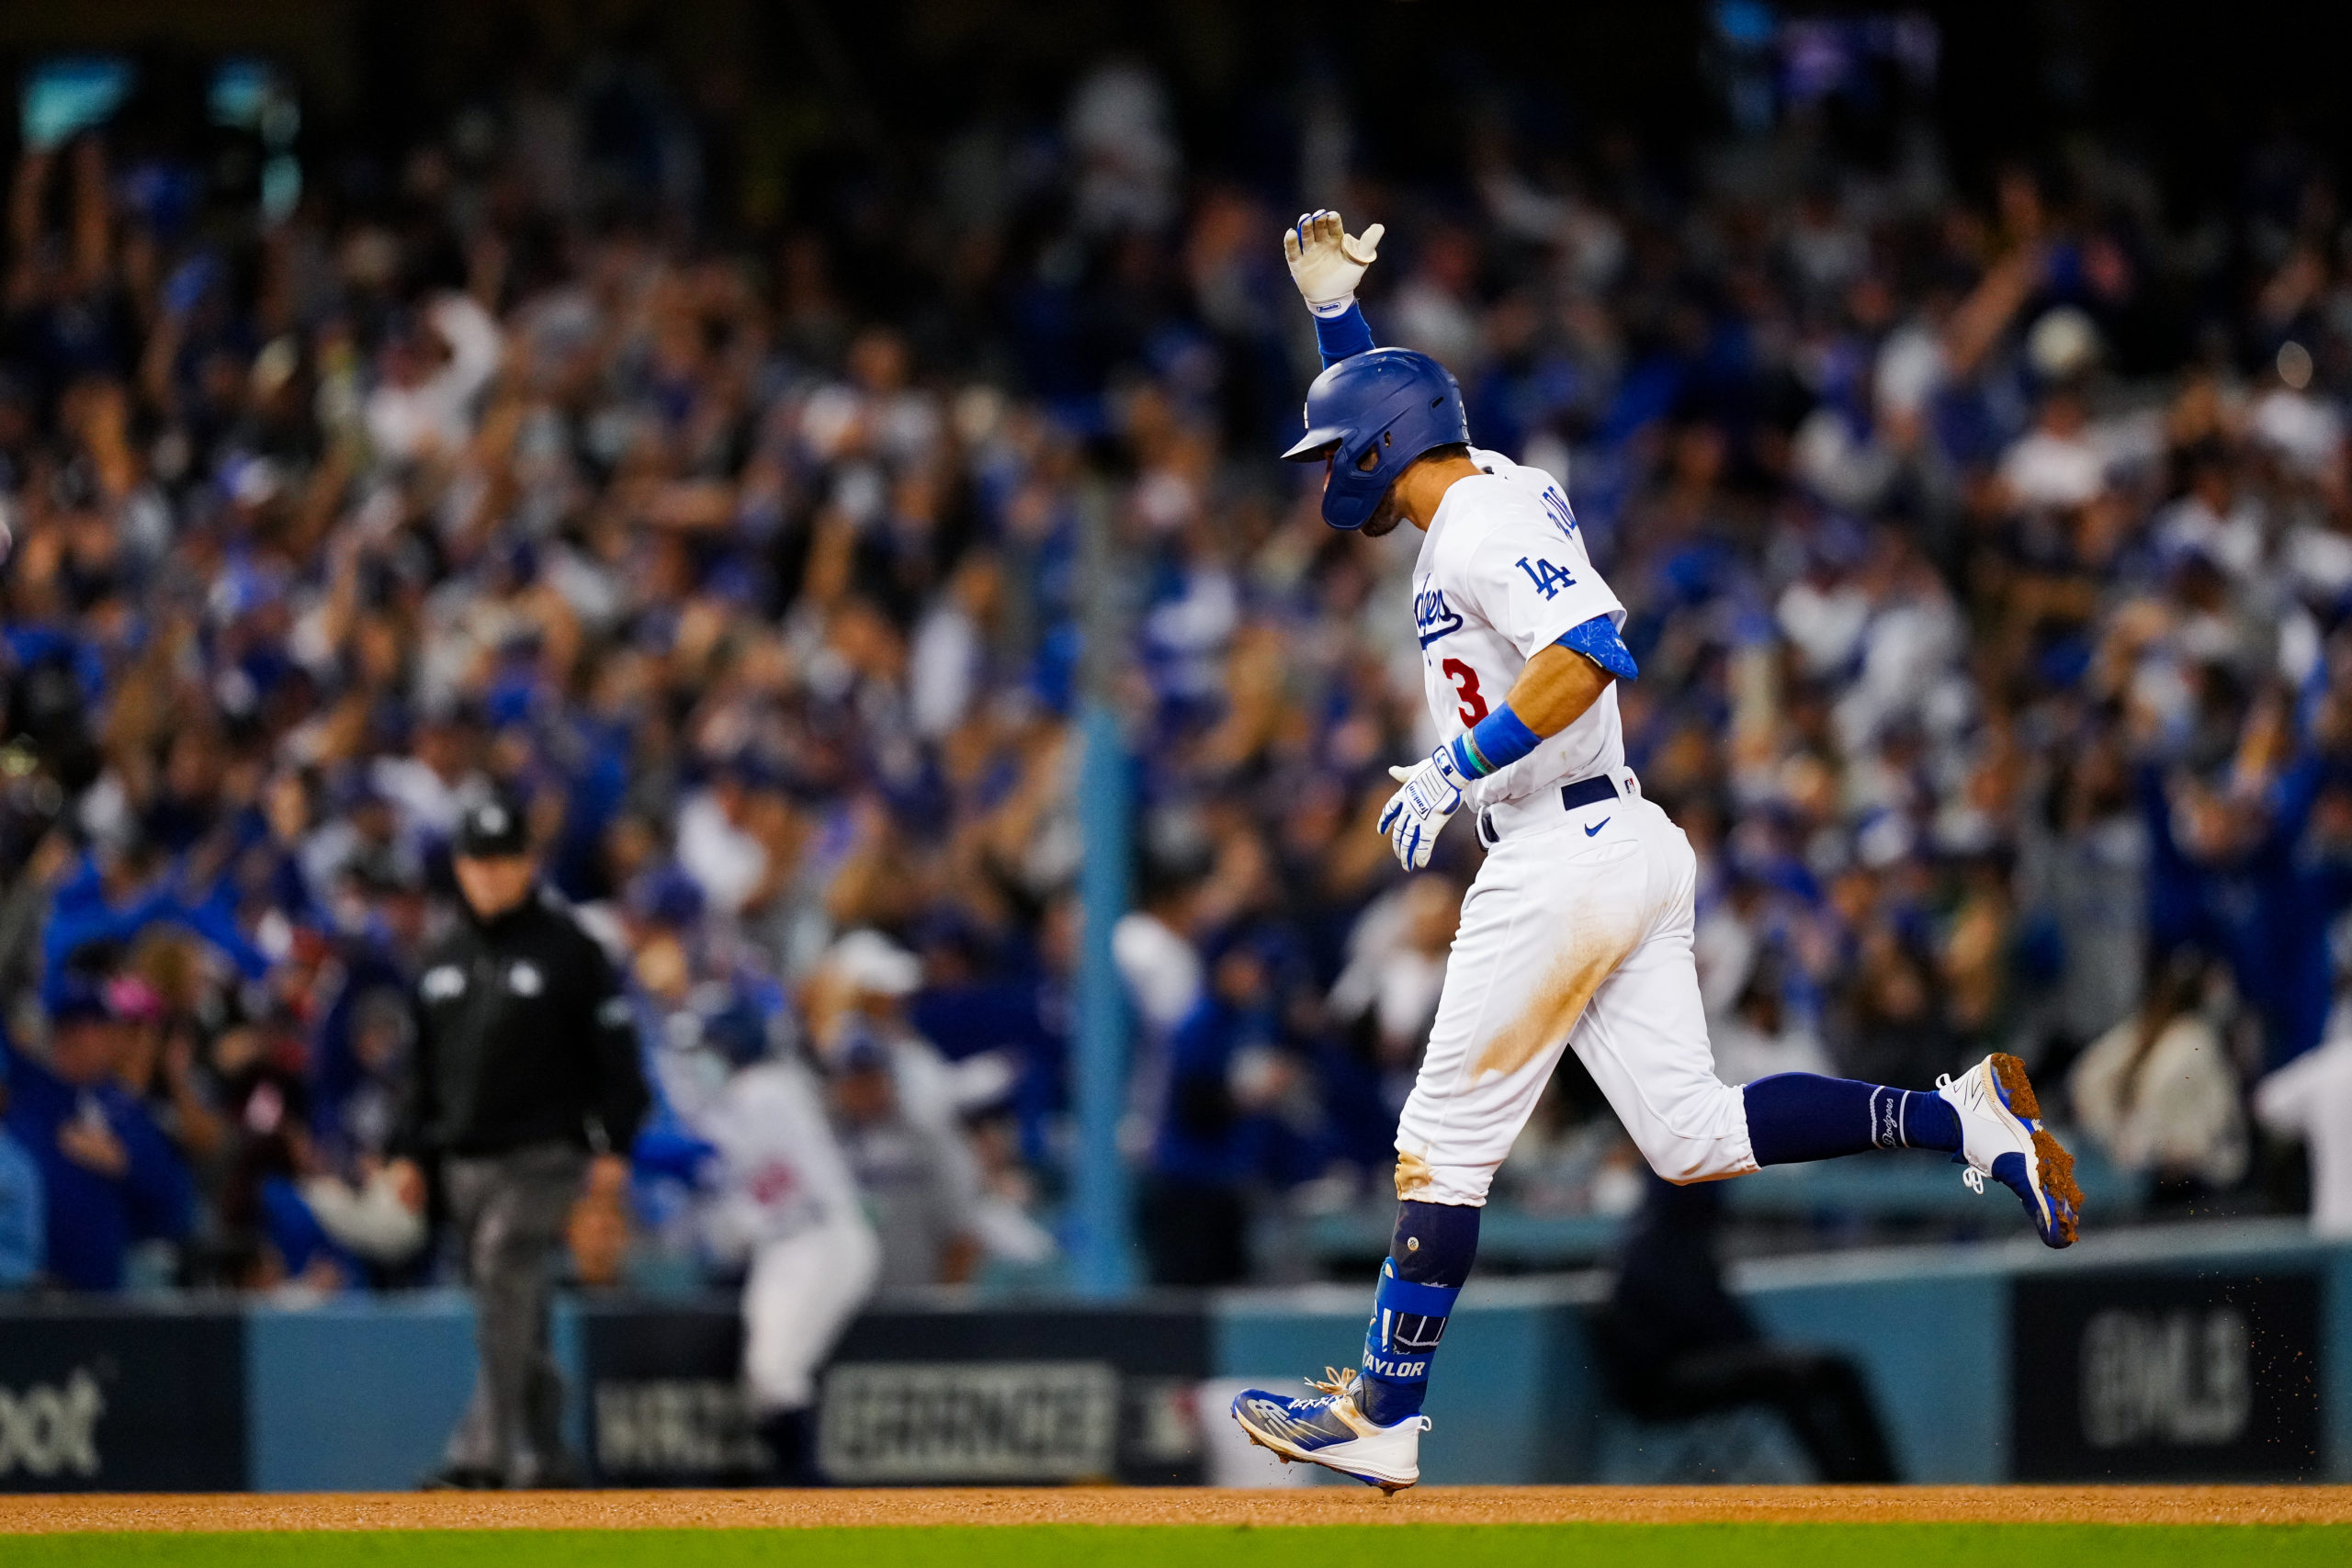 Chris Taylor's Three Homers Help Dodgers Avoid Elimination, Blowout Braves 11-2 in Game 5 of NLCS – NBC Los Angeles